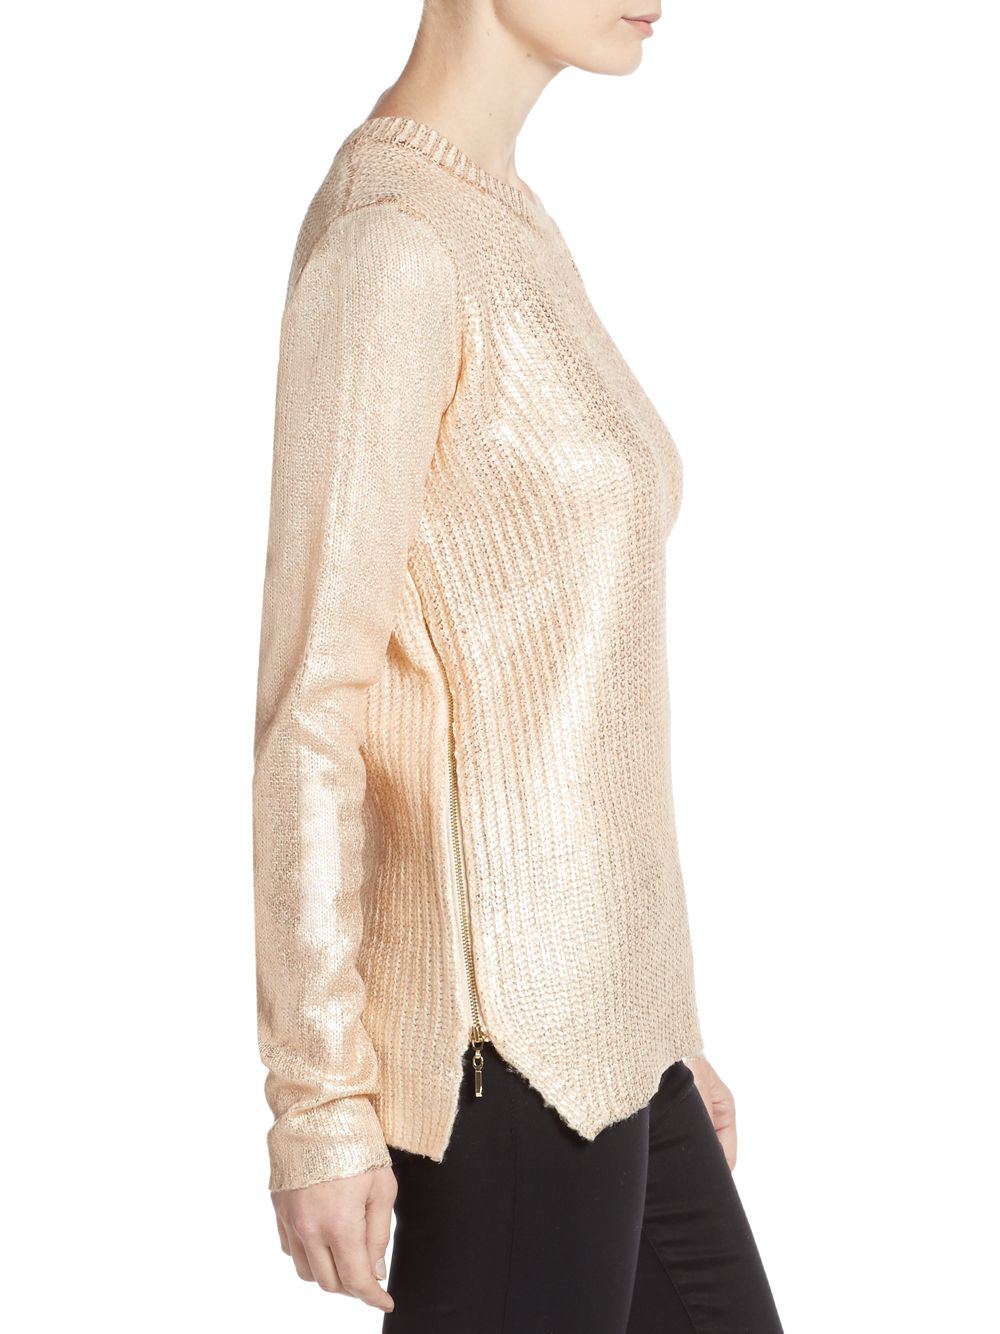 Saks fifth avenue Lame Crackle Side-zip Sweater in Pink | Lyst